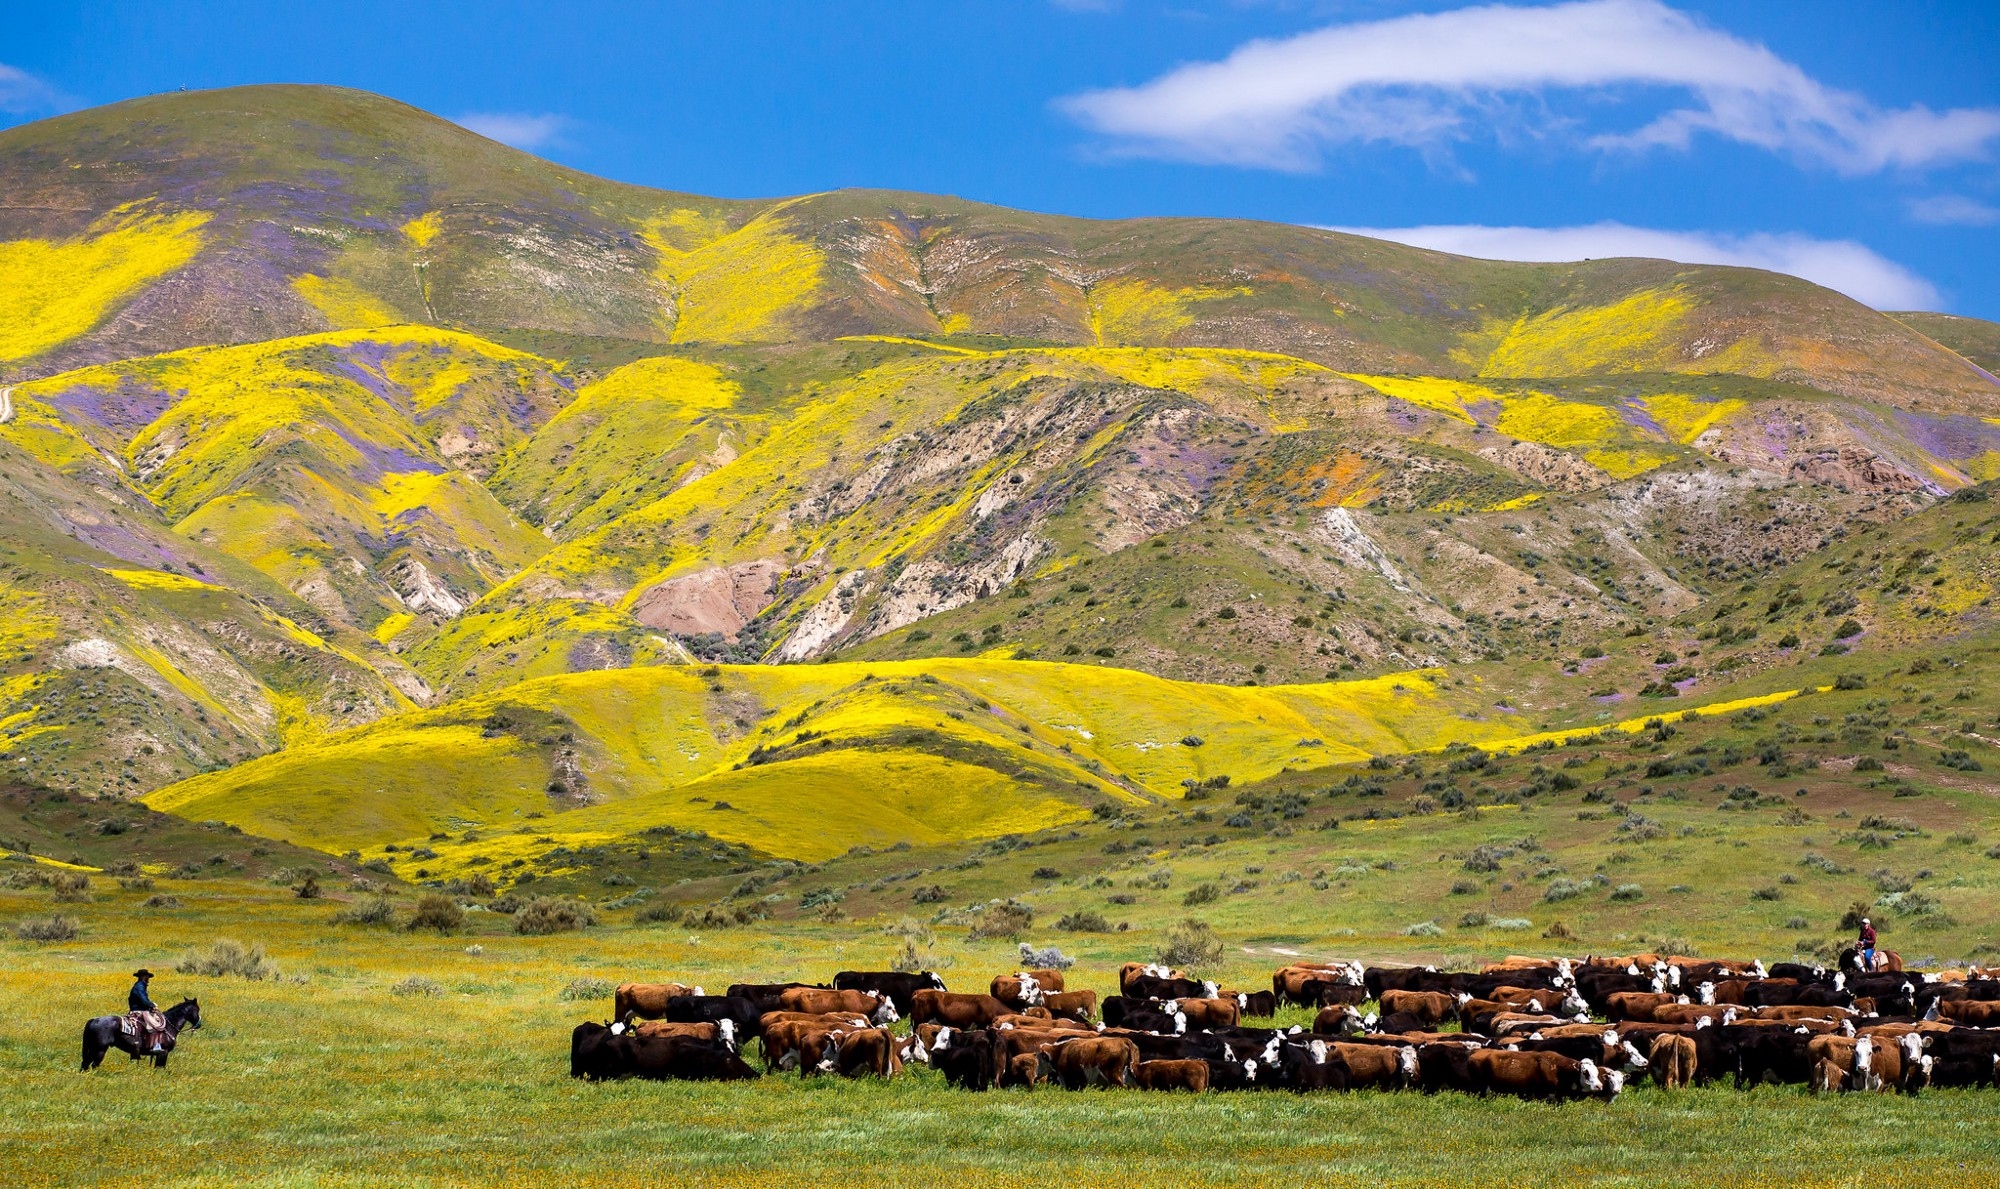 Carrizo Plain National Monument with cattle